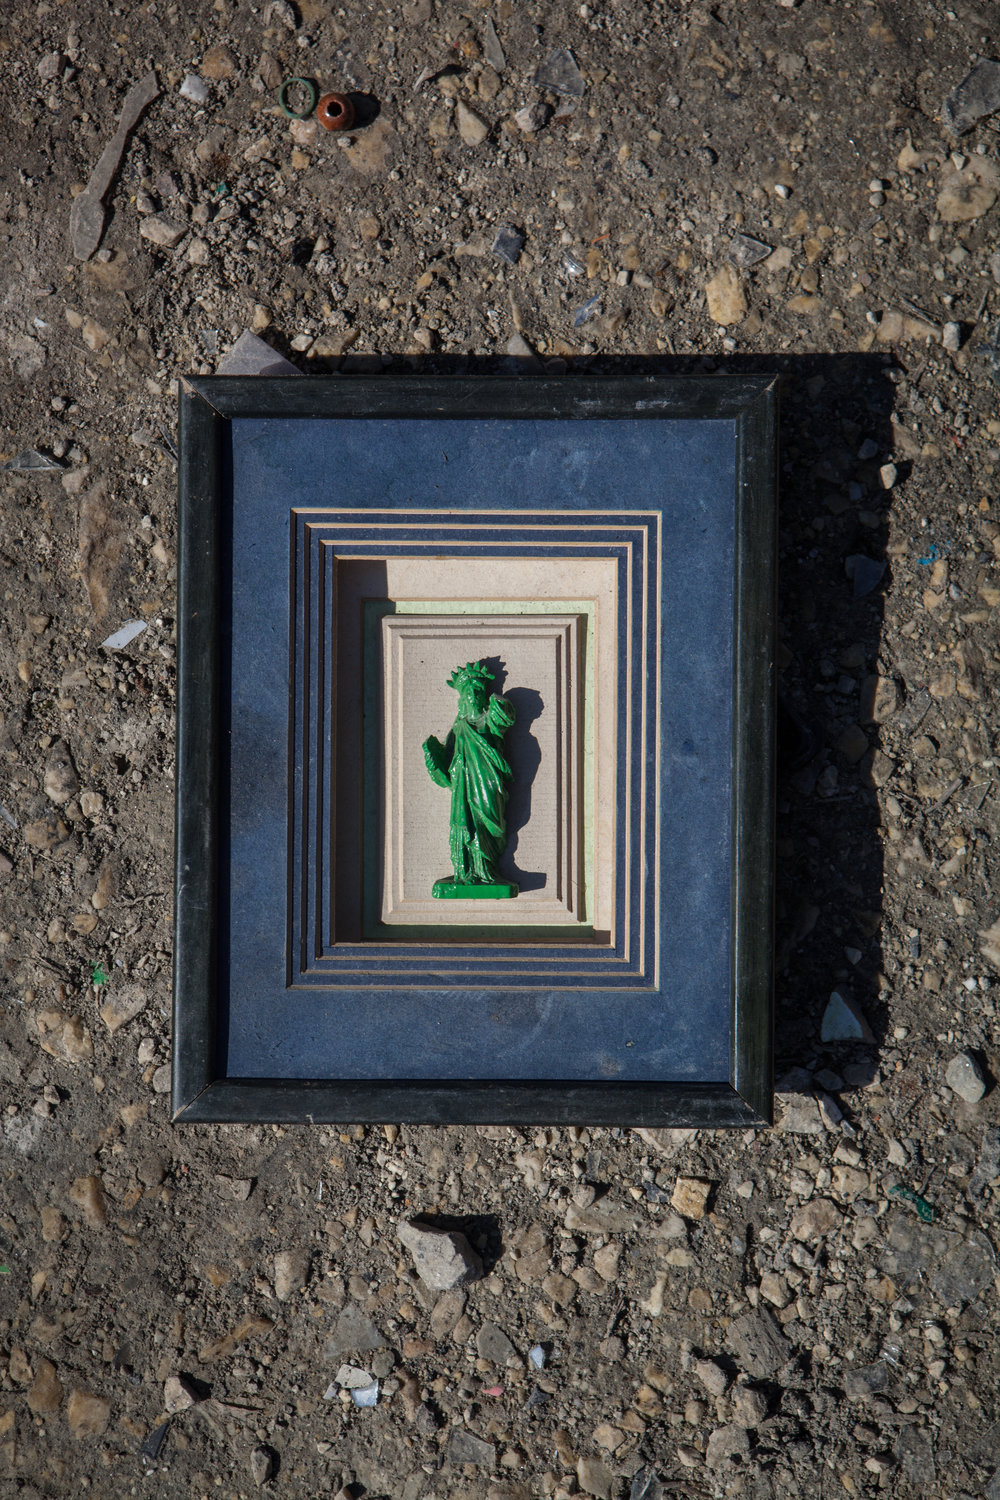 The last found object is my favourite.  This green plastic framed statue of liberty was missing it's torch to shine the light of justice and was lying abandoned amongst the rubbish.